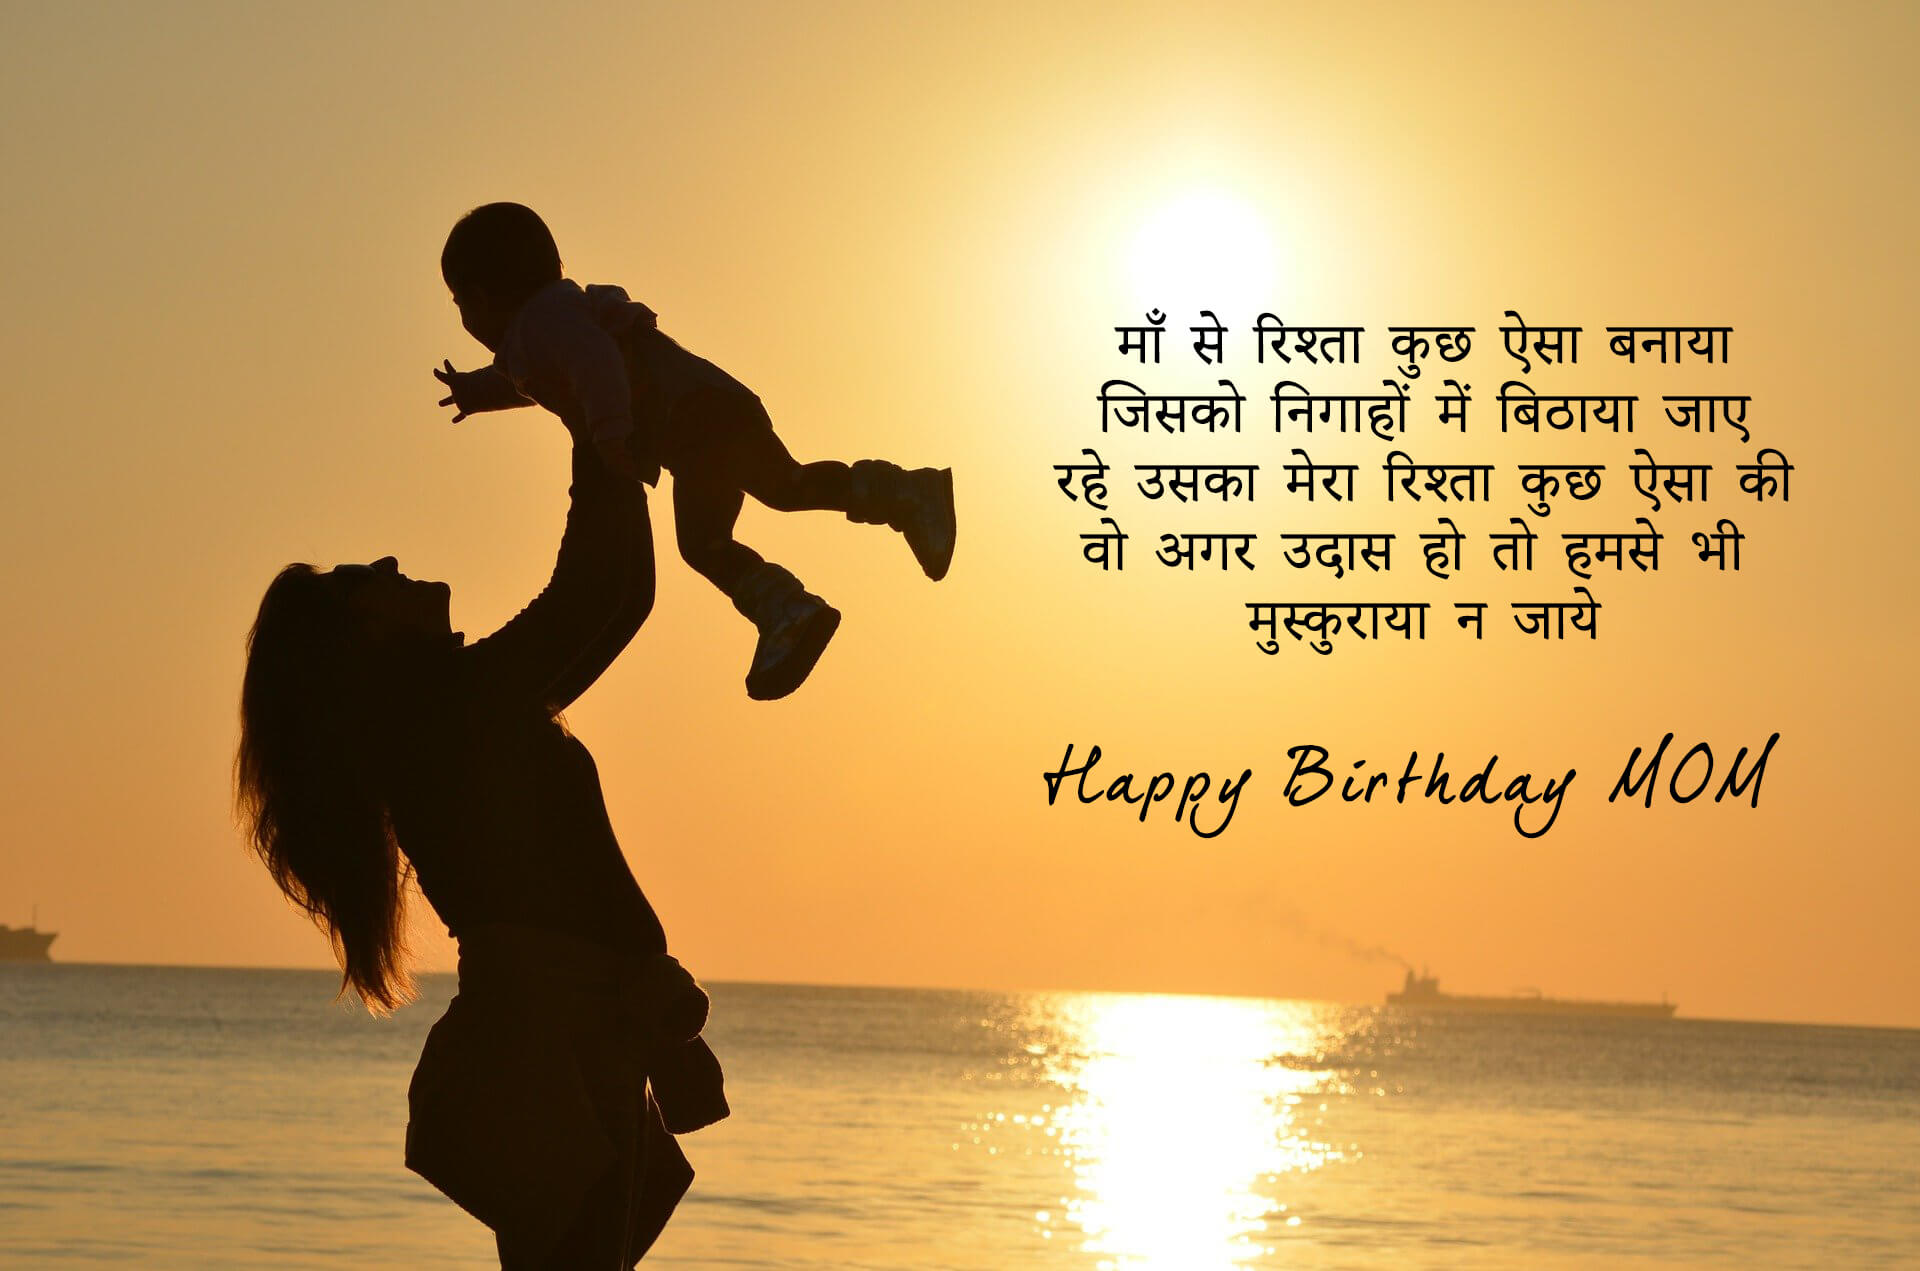 birthday wishes for mom in hindi